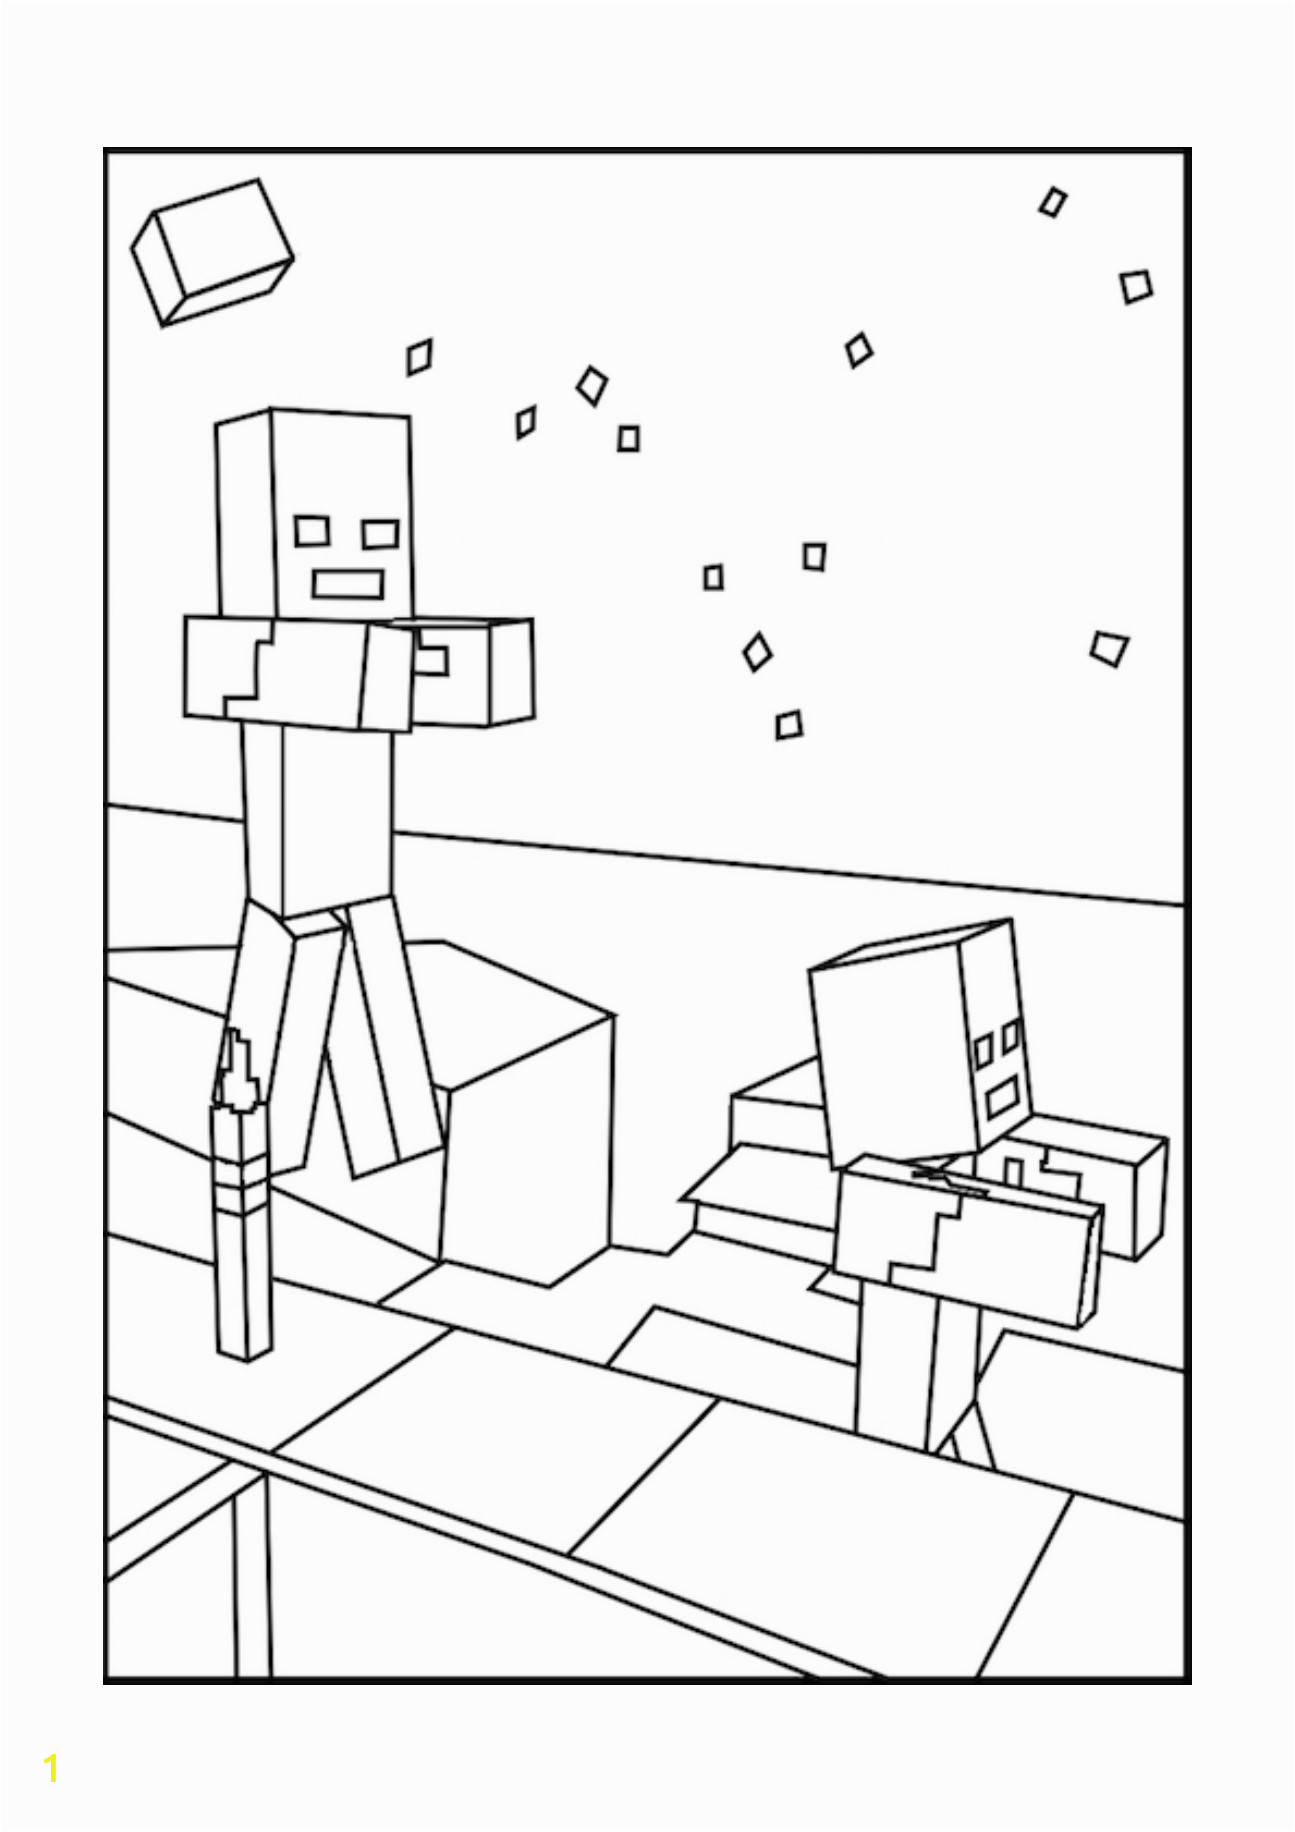 aff a7141f3313f82af zombie minecraft coloring pages free printable minecraft 1295 1832